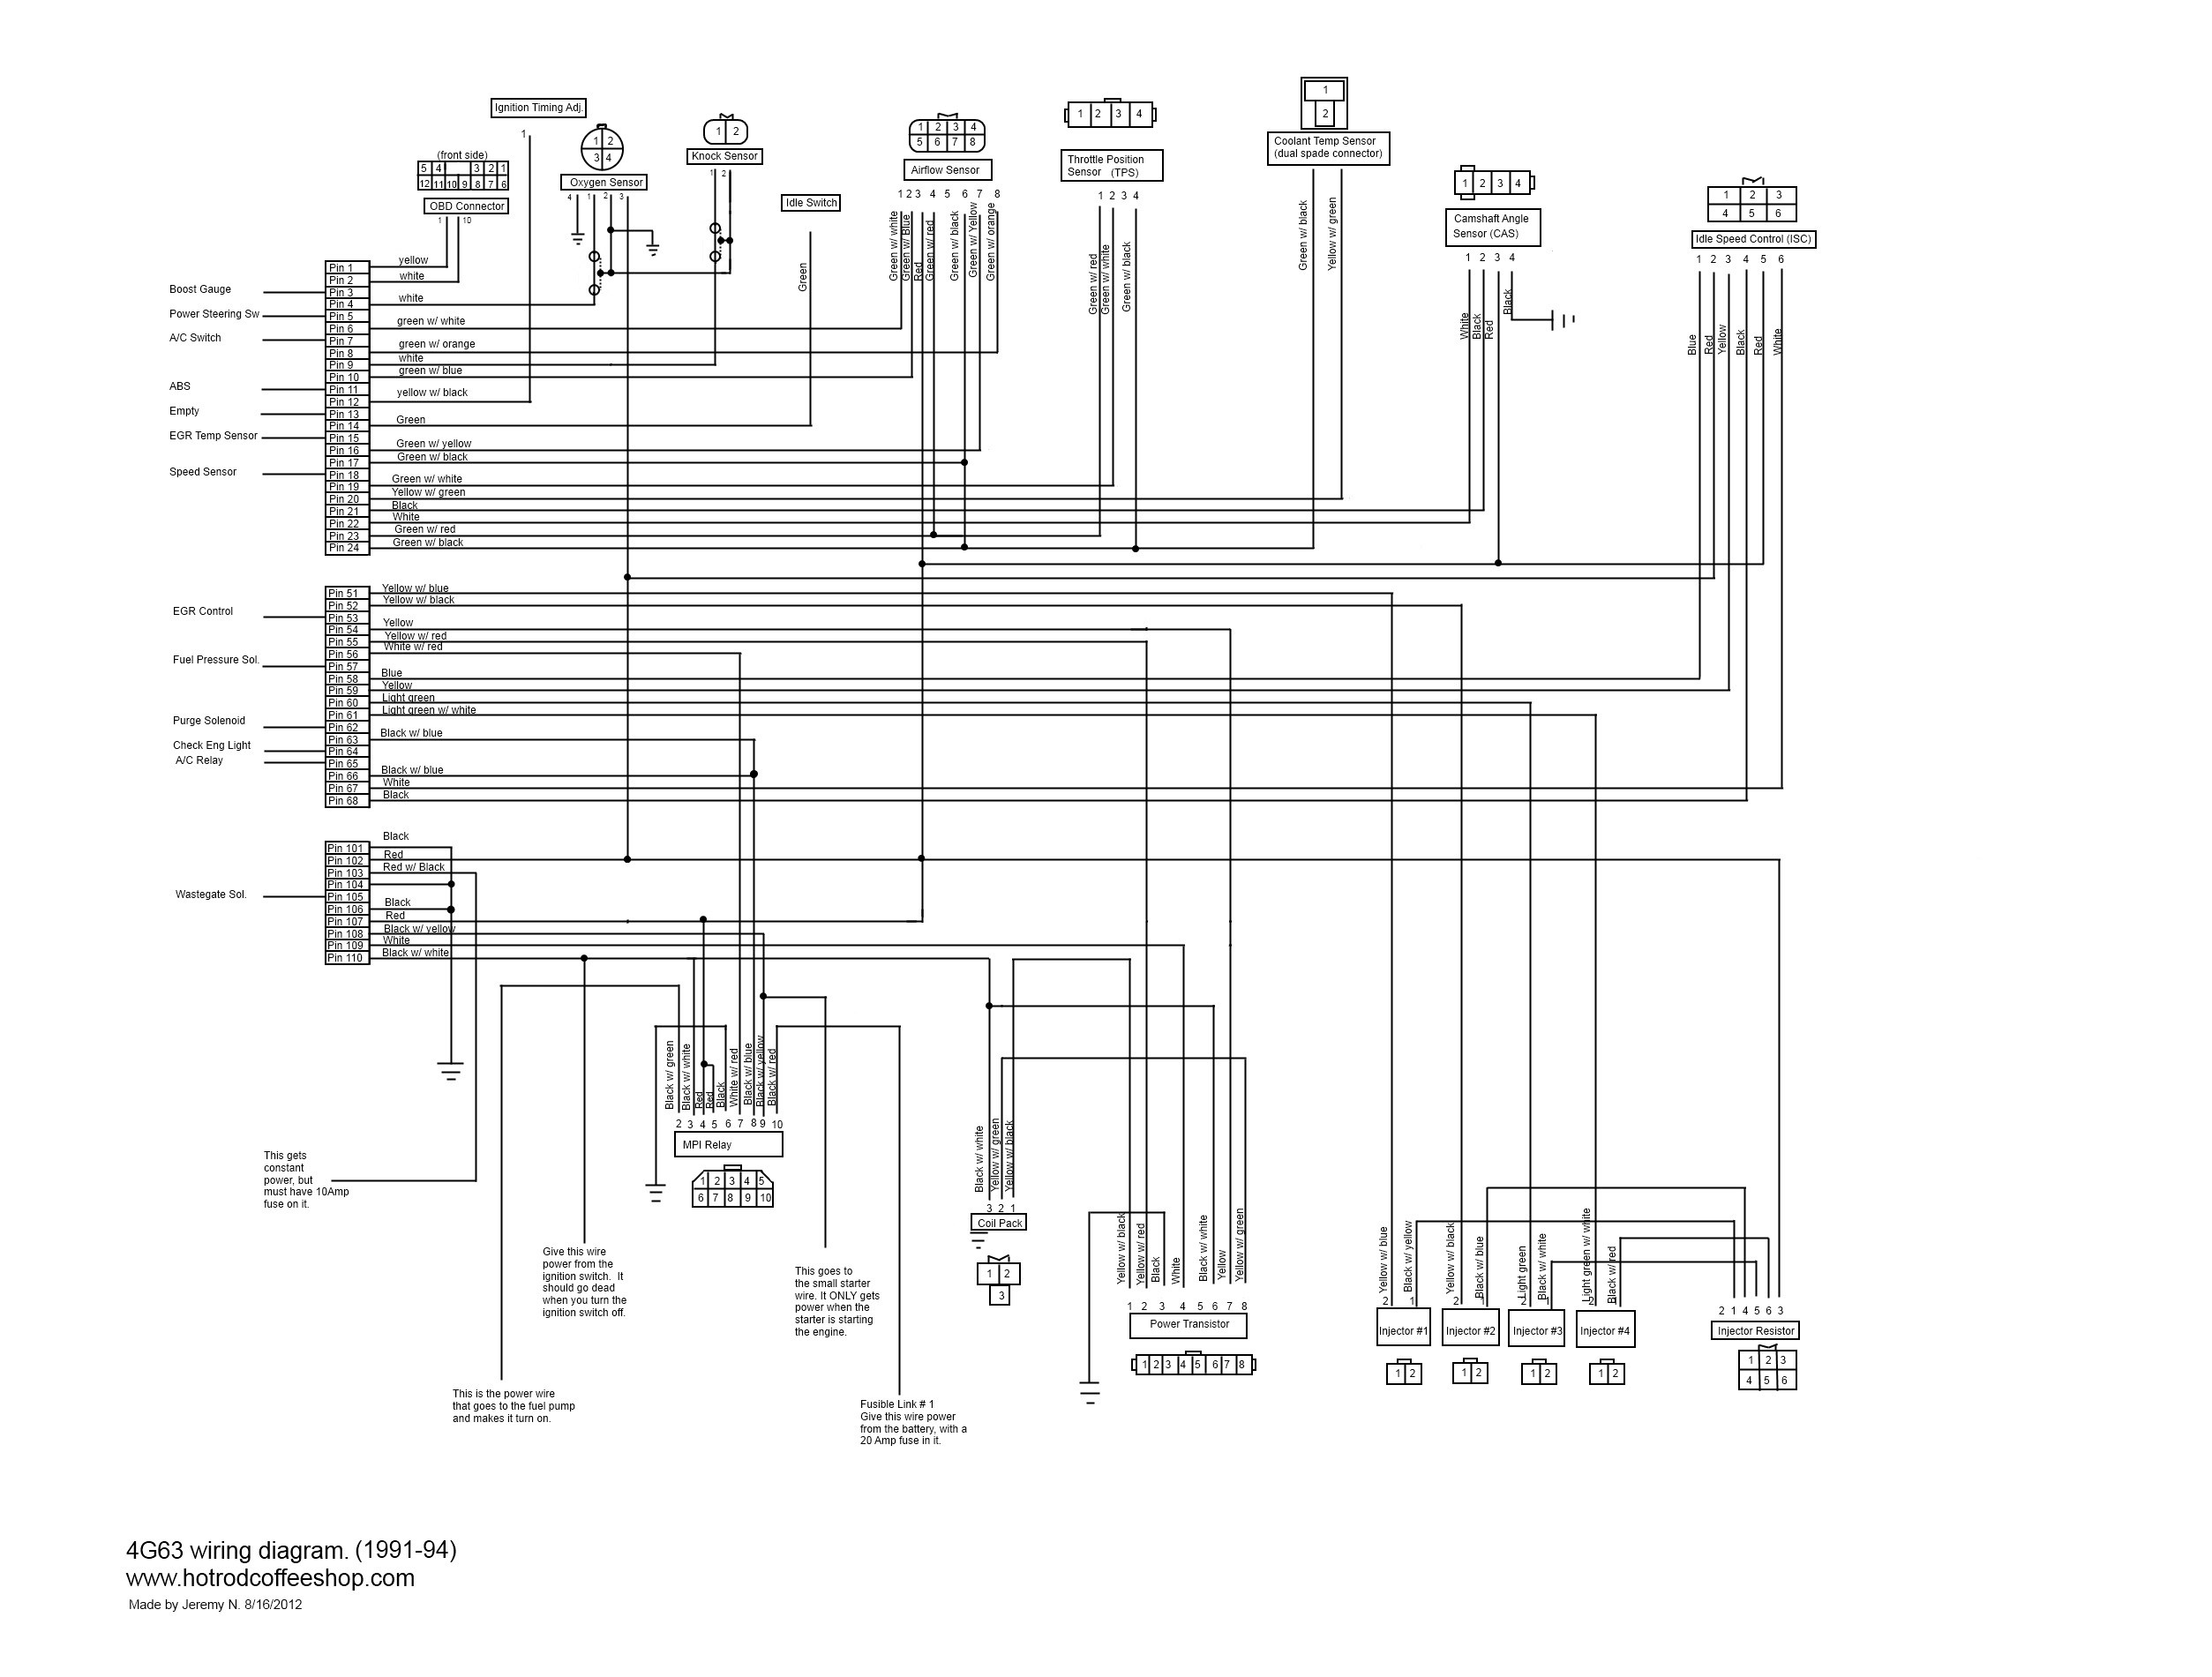 Mitsubishi Eclipse Ignition System Diagram